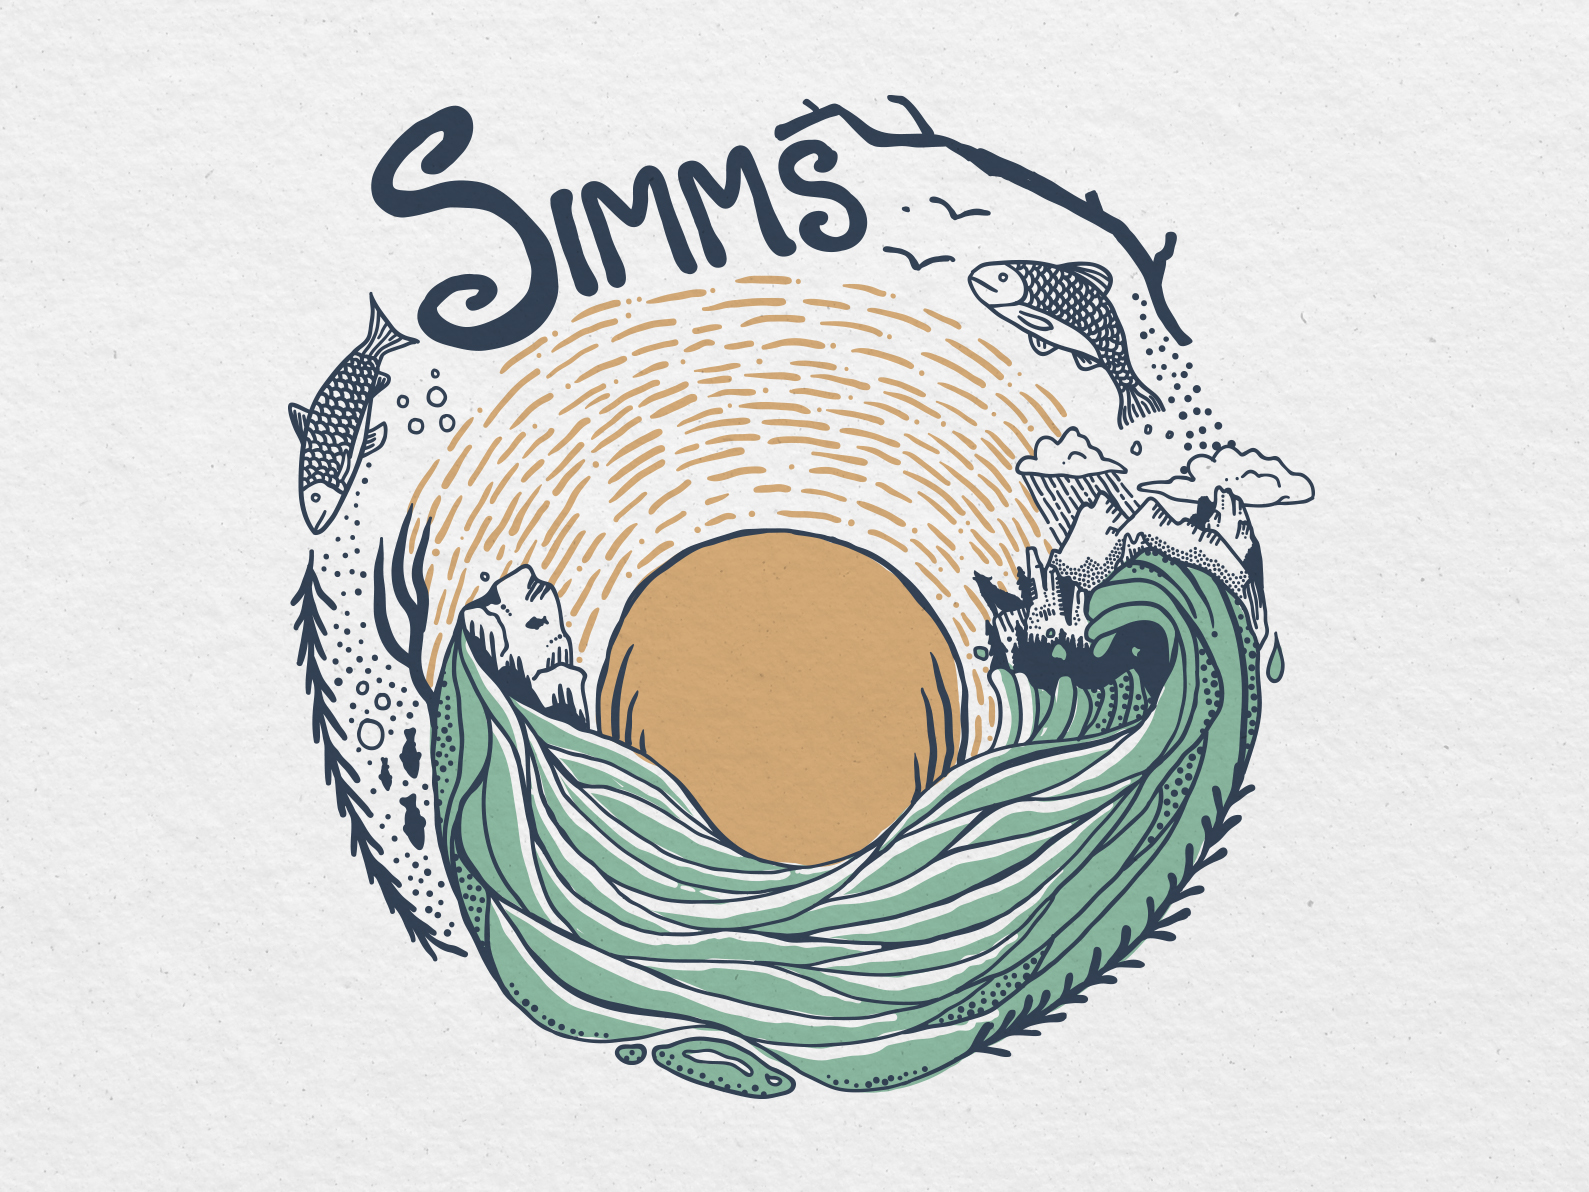 Concept work for Simms Fishing